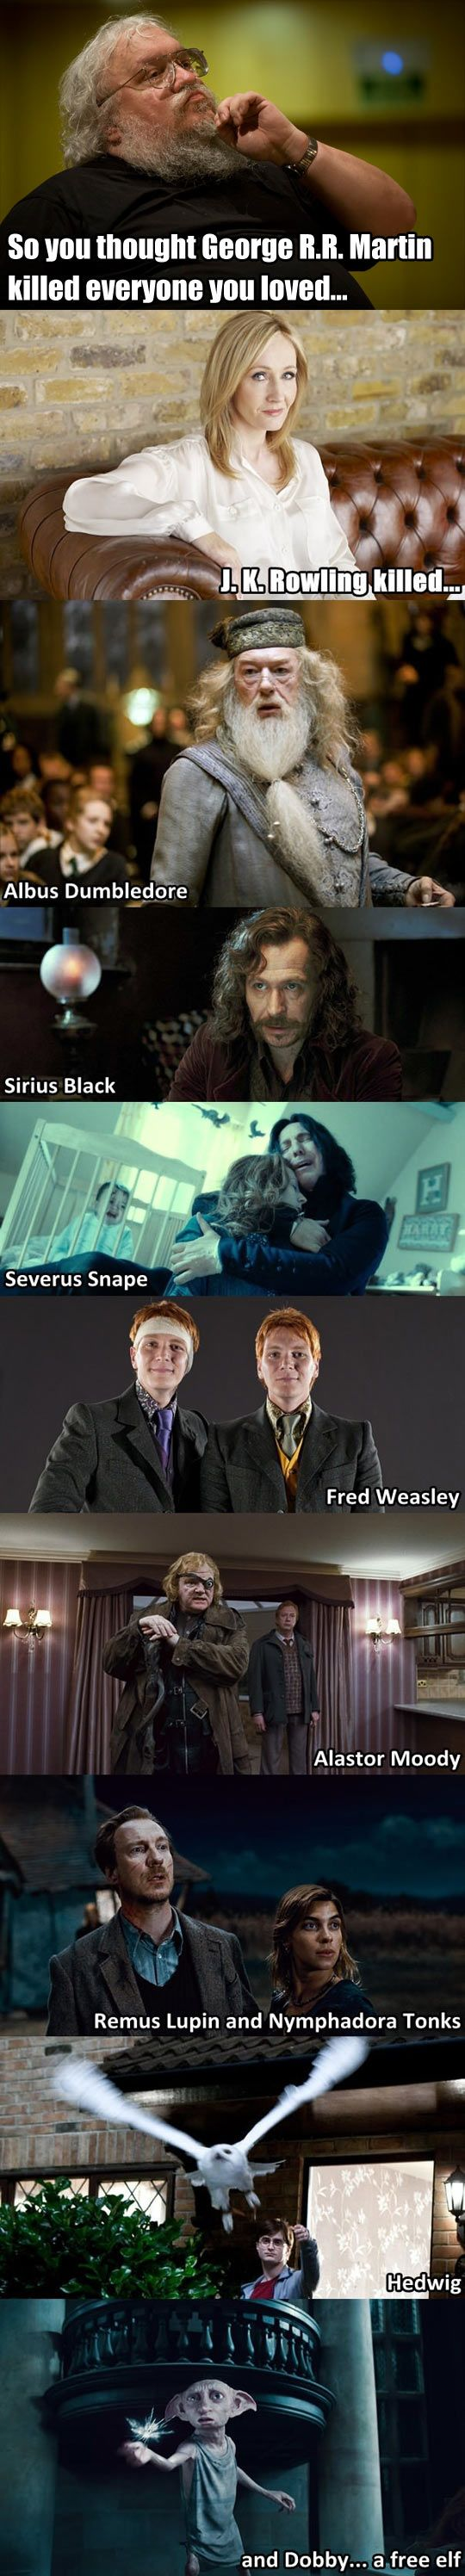 and Lily and James. Even though Nevil's parents weren't killed their half life was even worse. And Colin Creevey, and Lavender, and Snape. And she was going to kill Ron!